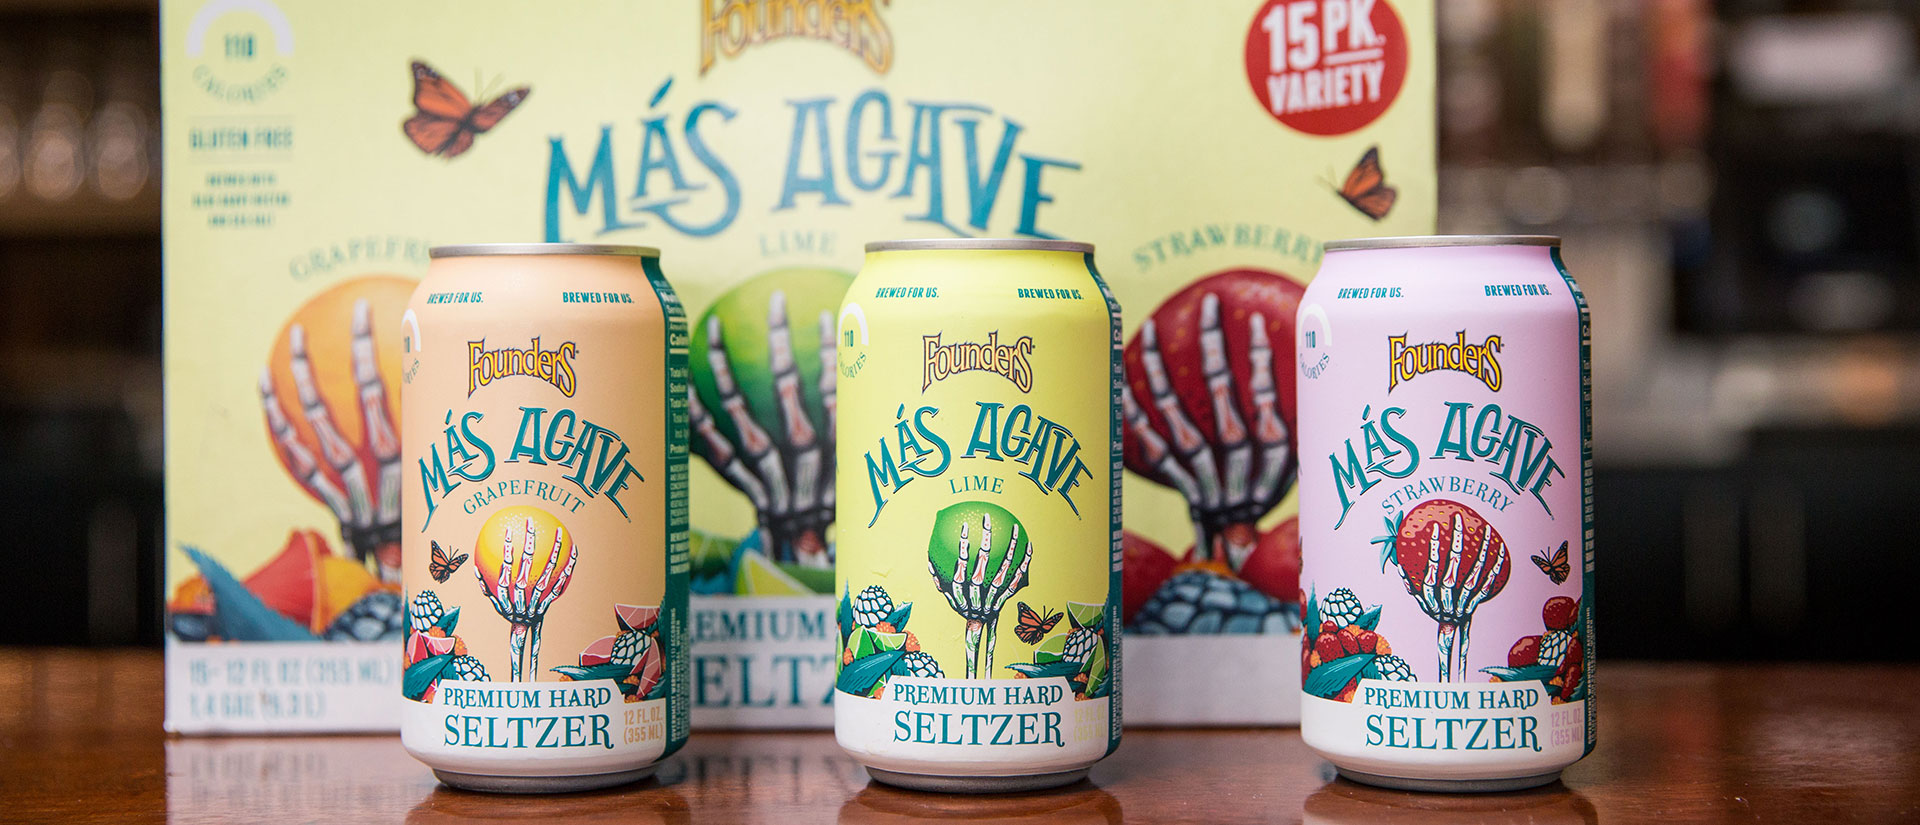 Mas Agave Premium Hard Seltzer cans in front of a 15-pack